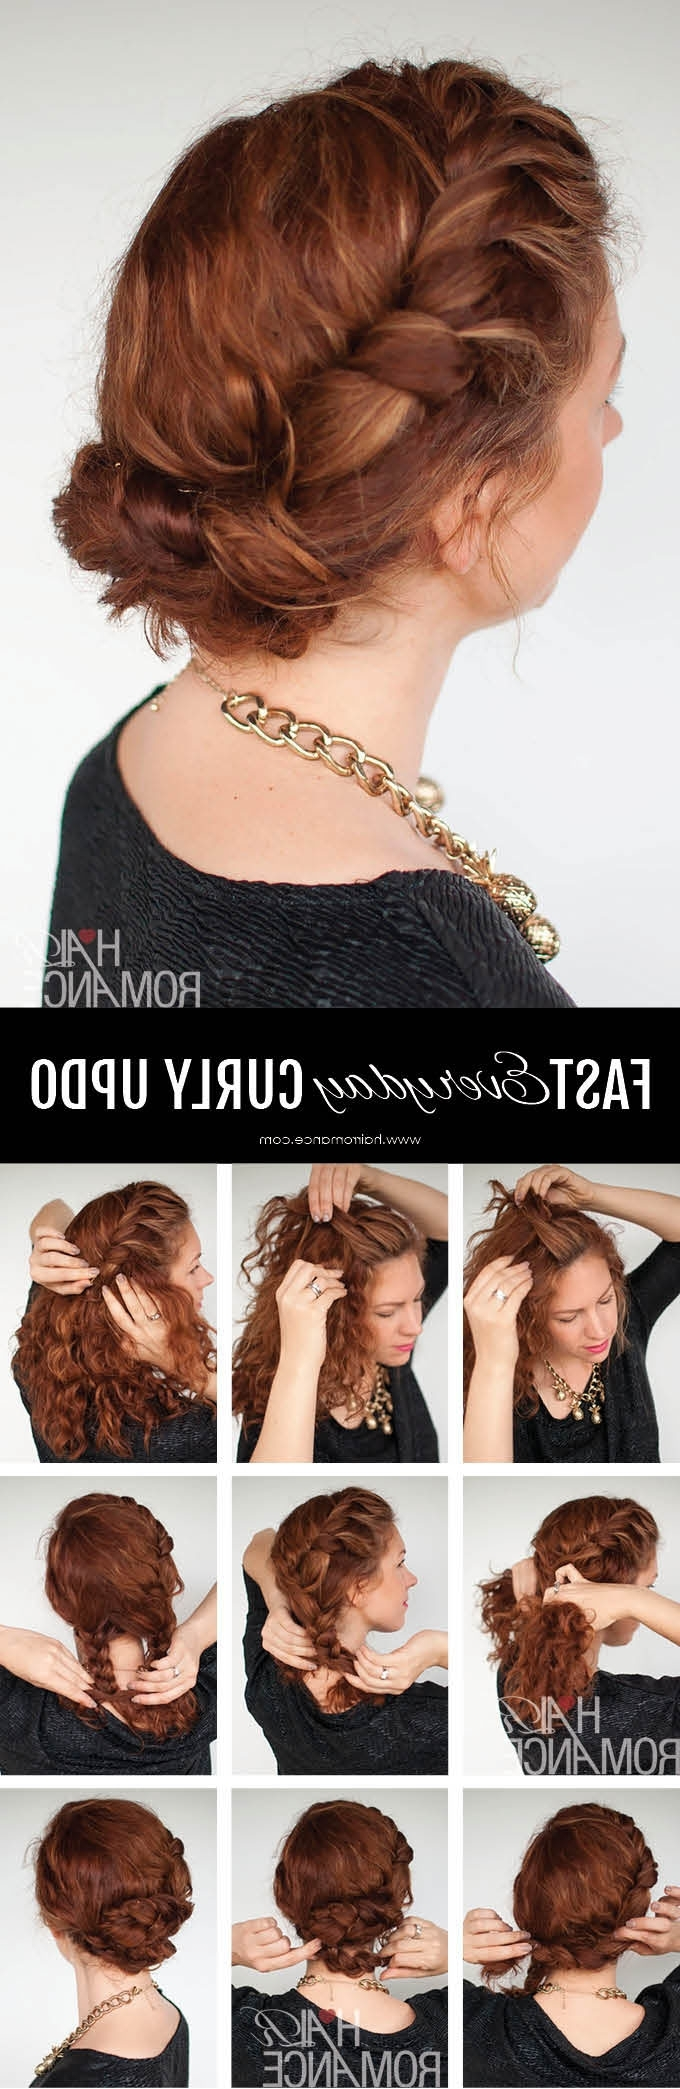 My Quick Everyday Curly Hair Updo – Hair Romance Regarding Updo Hairstyles For Long Curly Hair (View 7 of 15)